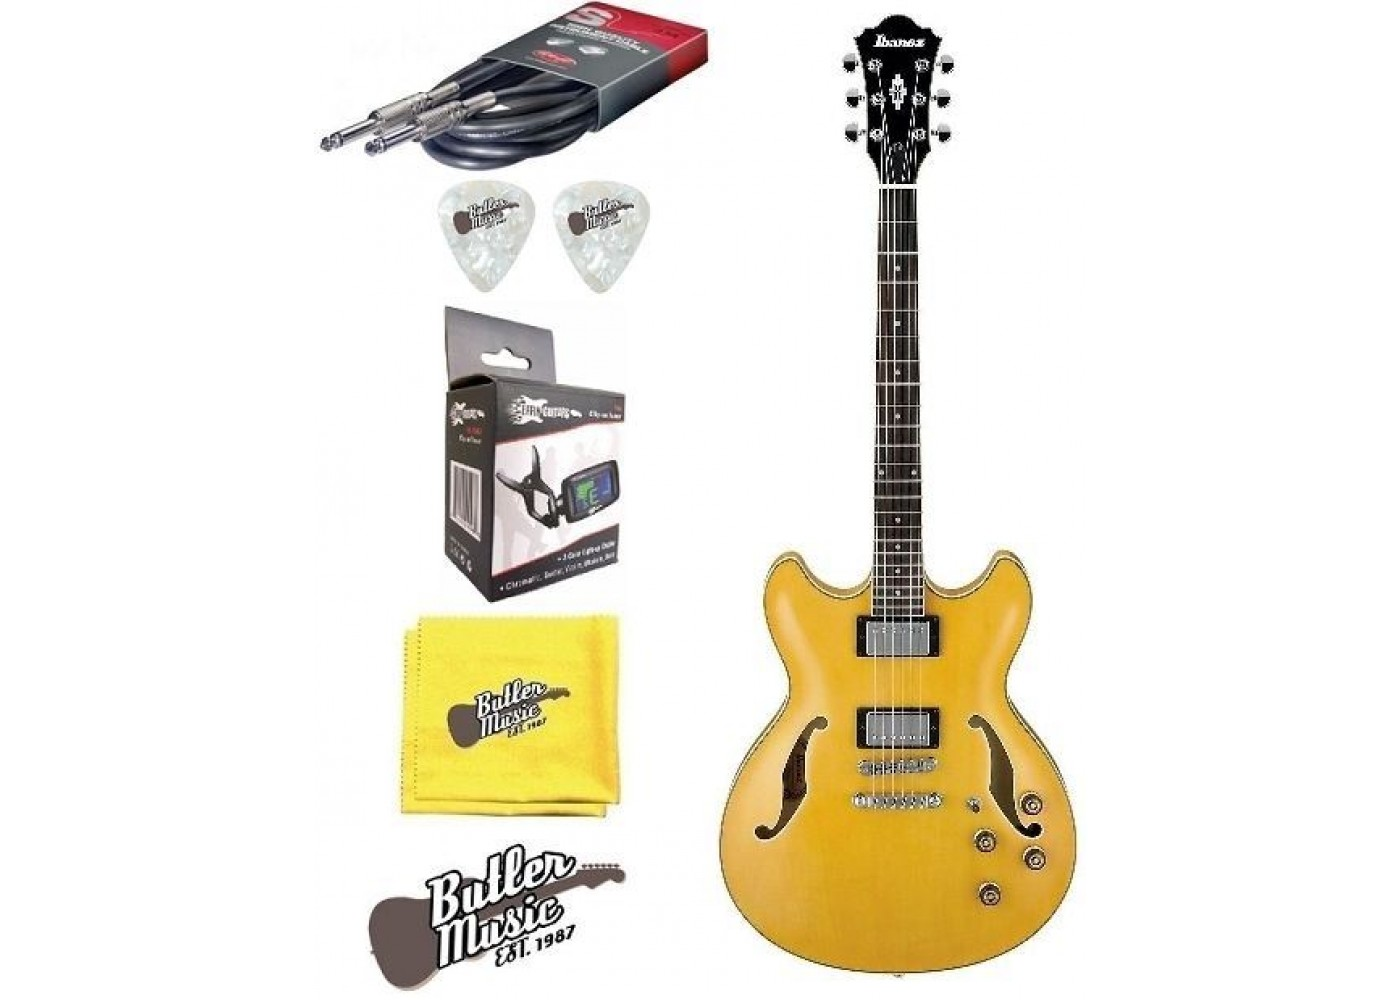 ibanez as73aa semi hollow body electric guitar w effin tuner more. Black Bedroom Furniture Sets. Home Design Ideas